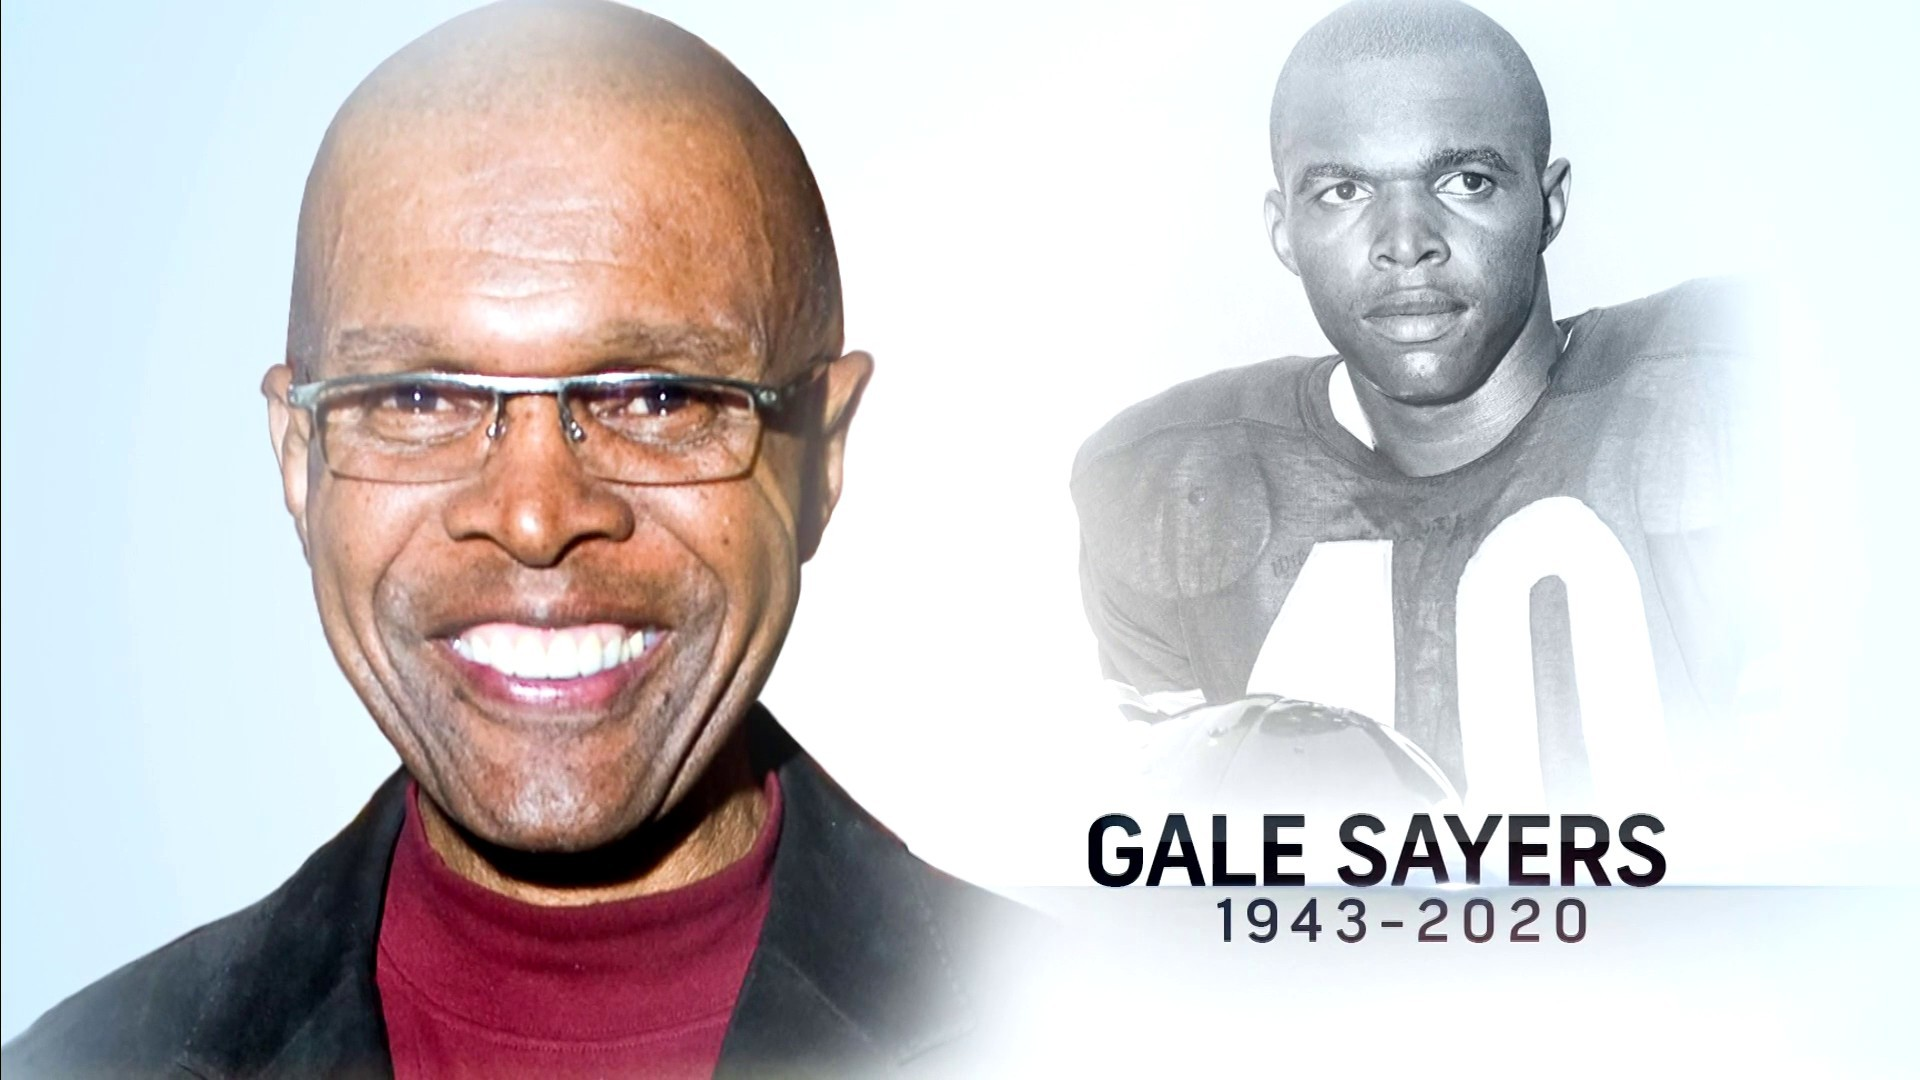 Hall of Famer and former Chicago Bears RB Gale Sayers dies at 77